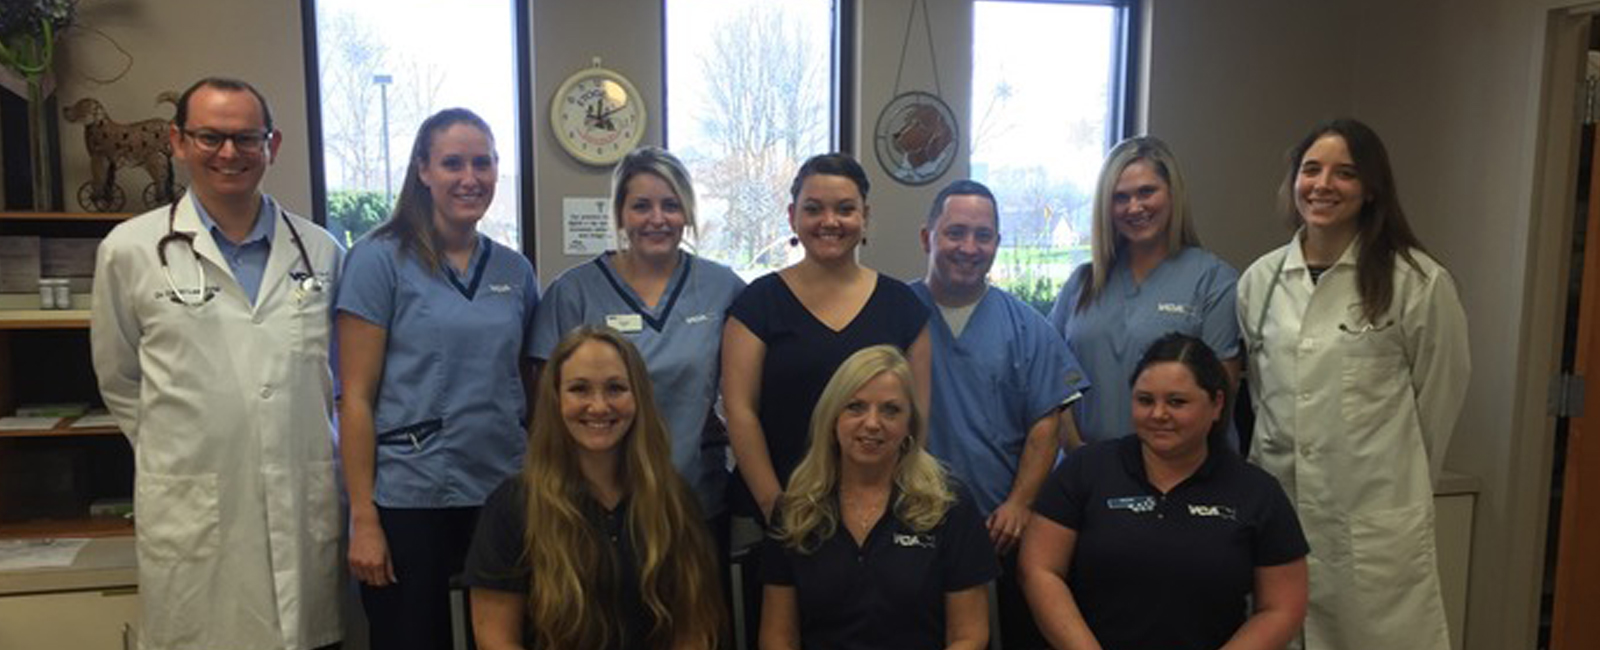 Home Page Team Picuture of Sugar Grove